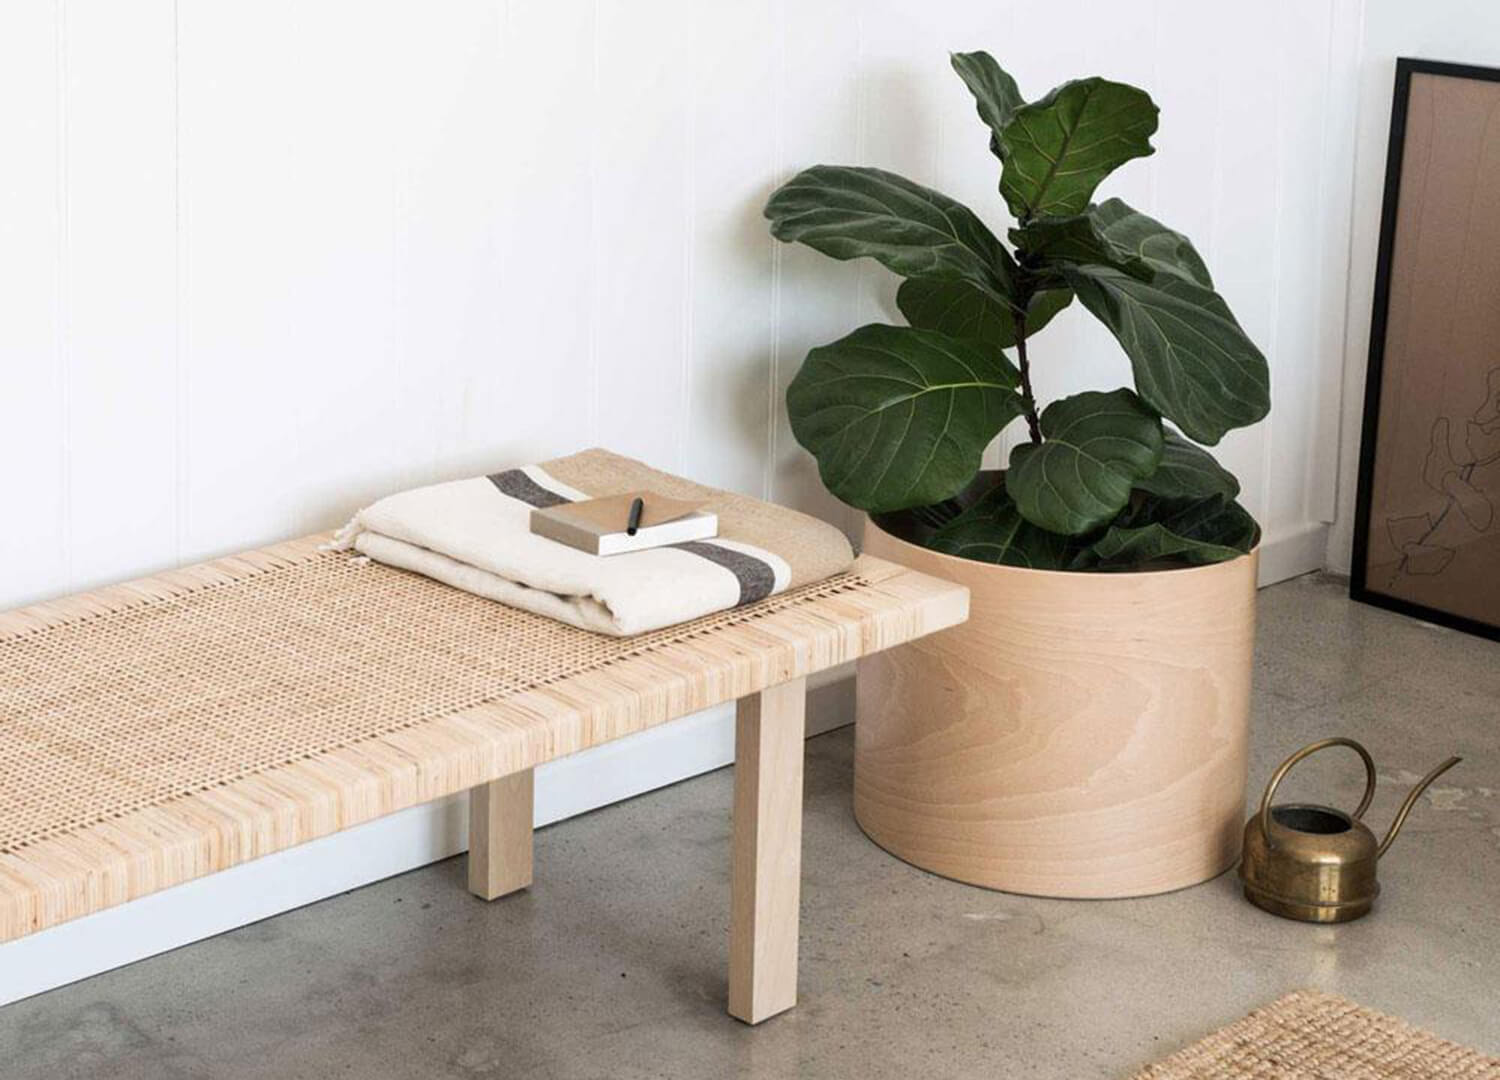 est living plyroom flor planter